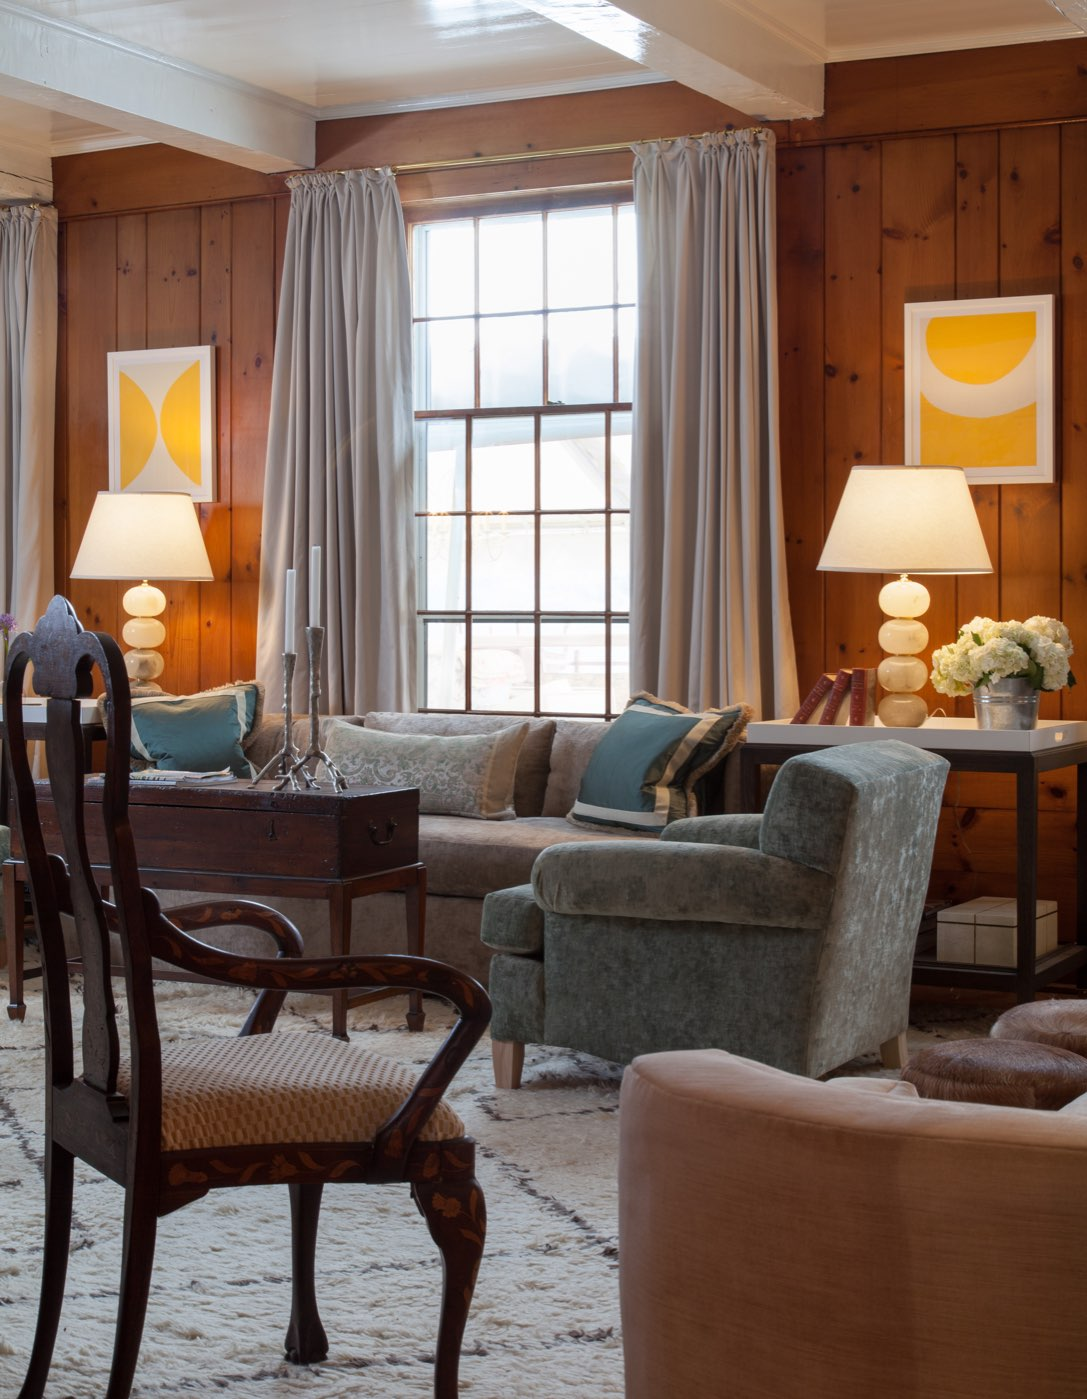 custom drapery at edson hill, Stowe Vermont